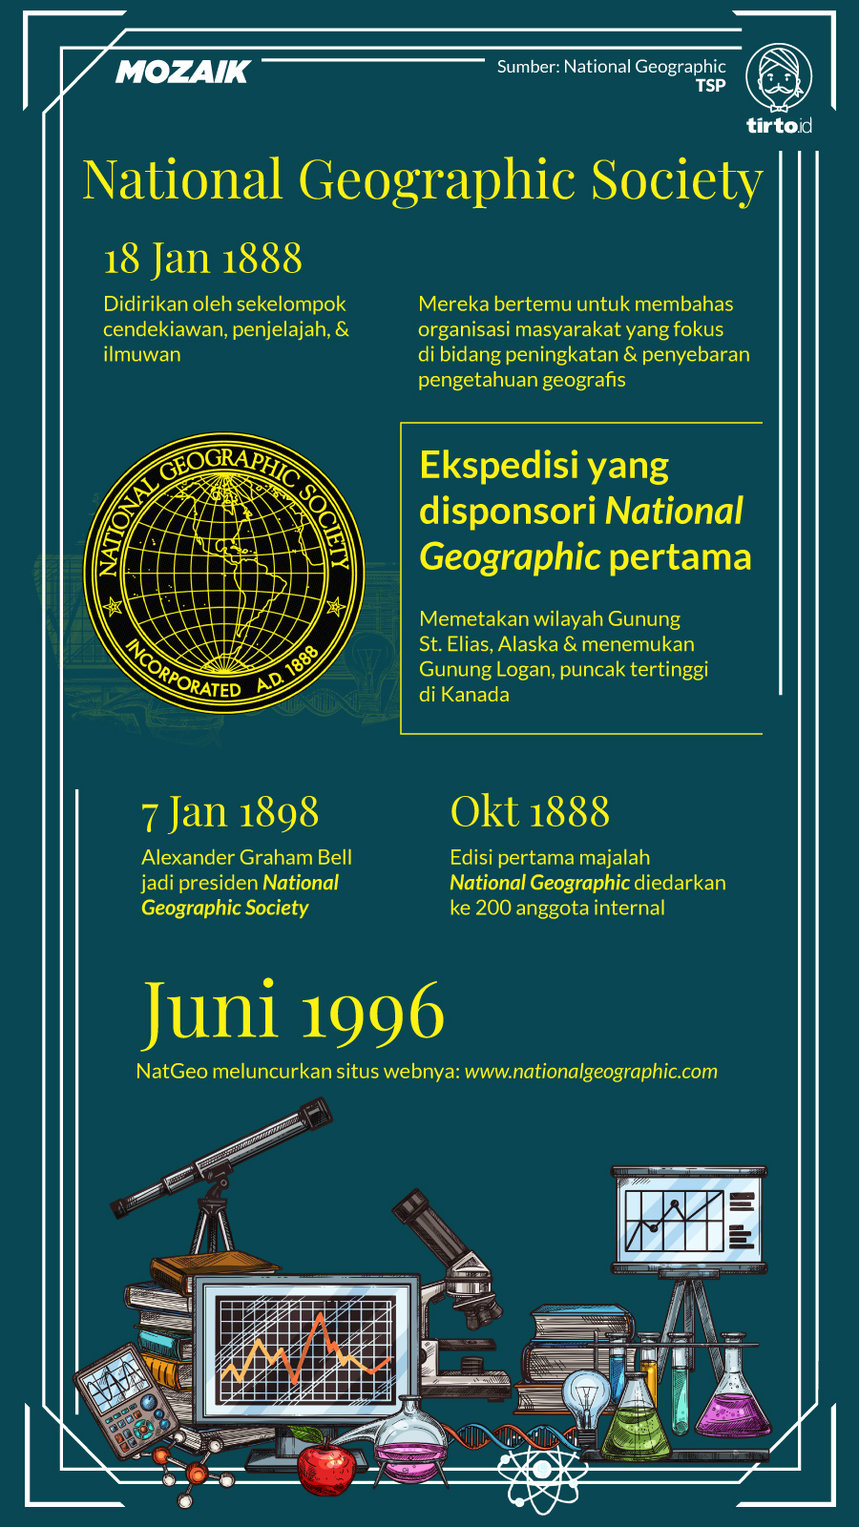 Infografik Mozaik National Geographic Society